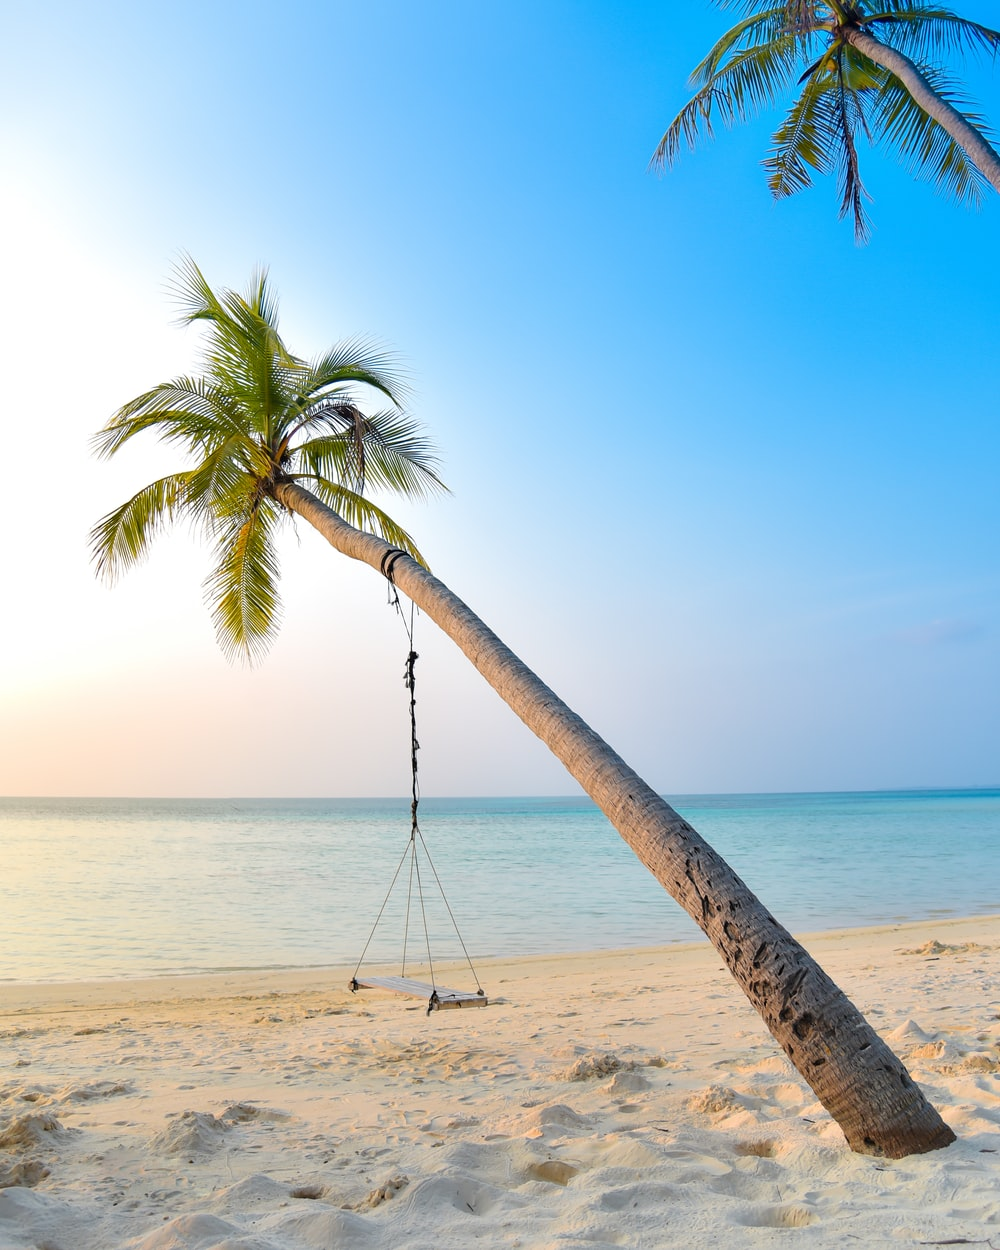 Swing Hang On Coconut Tree Near Seashore Photo Free Beach Image On Unsplash